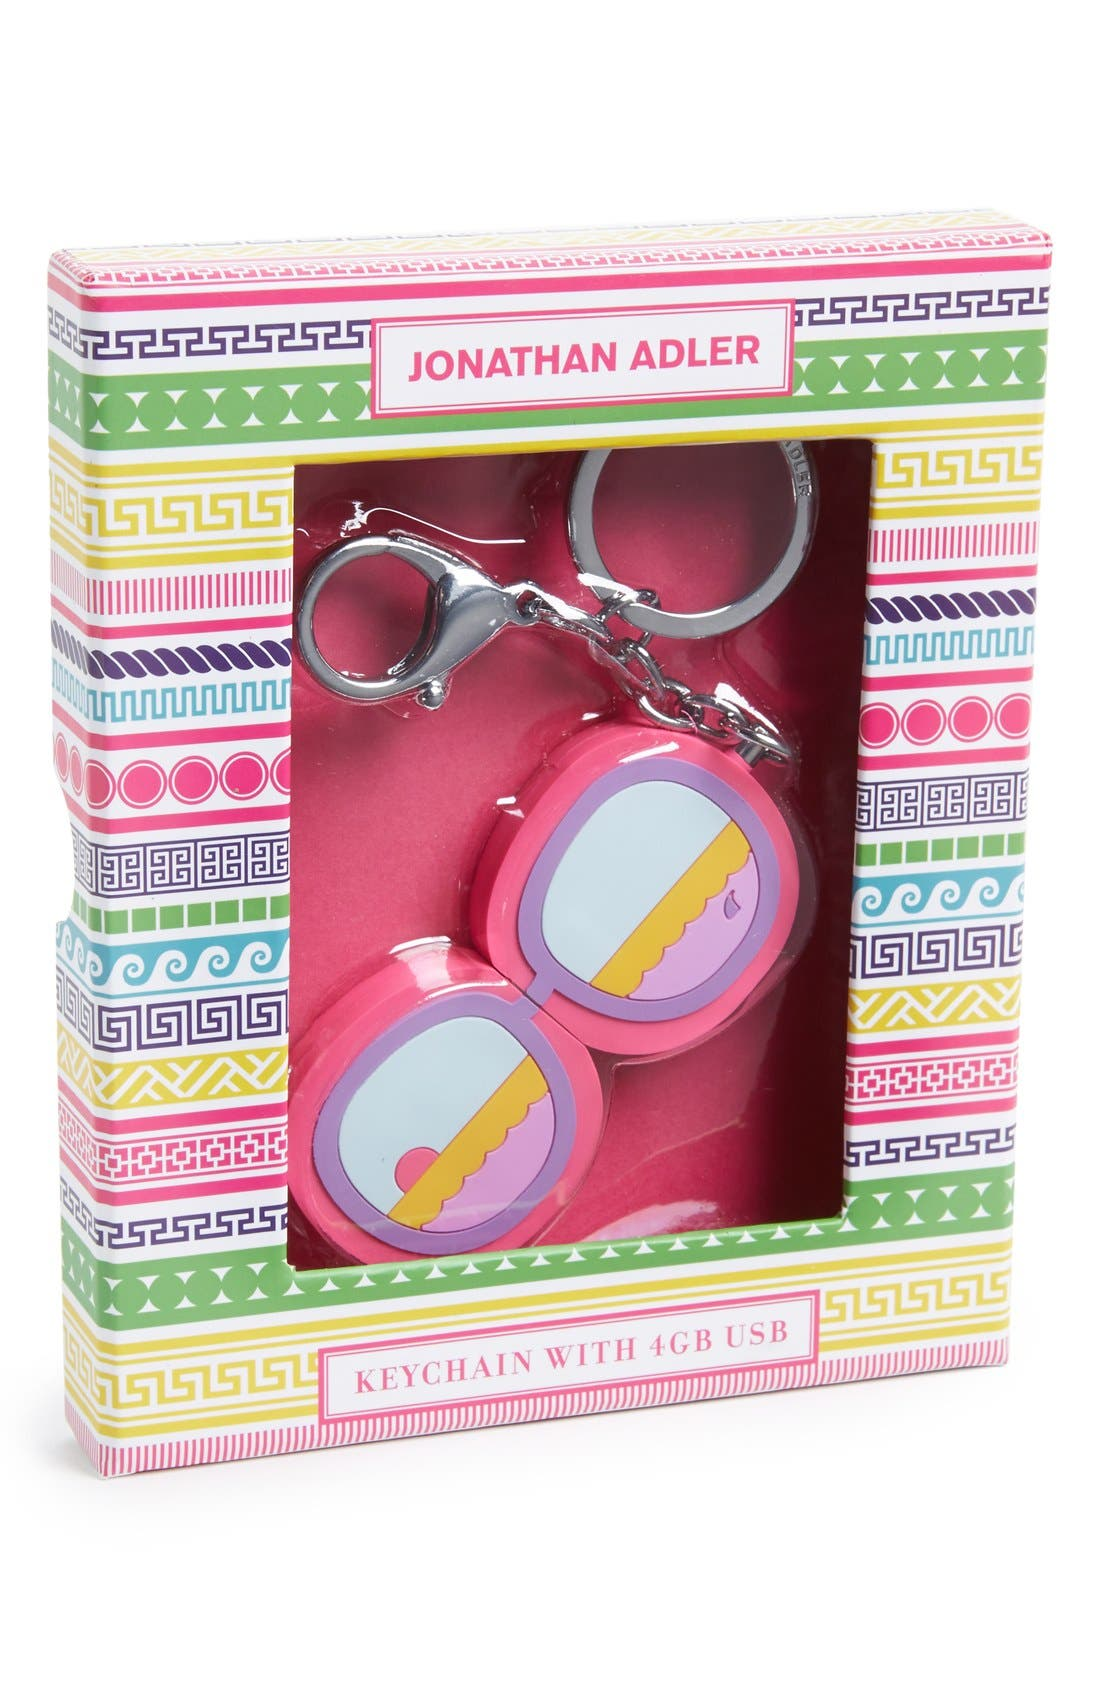 Alternate Image 1 Selected - Jonathan Adler 'Sunglasses' USB Flash Drive Key Chain